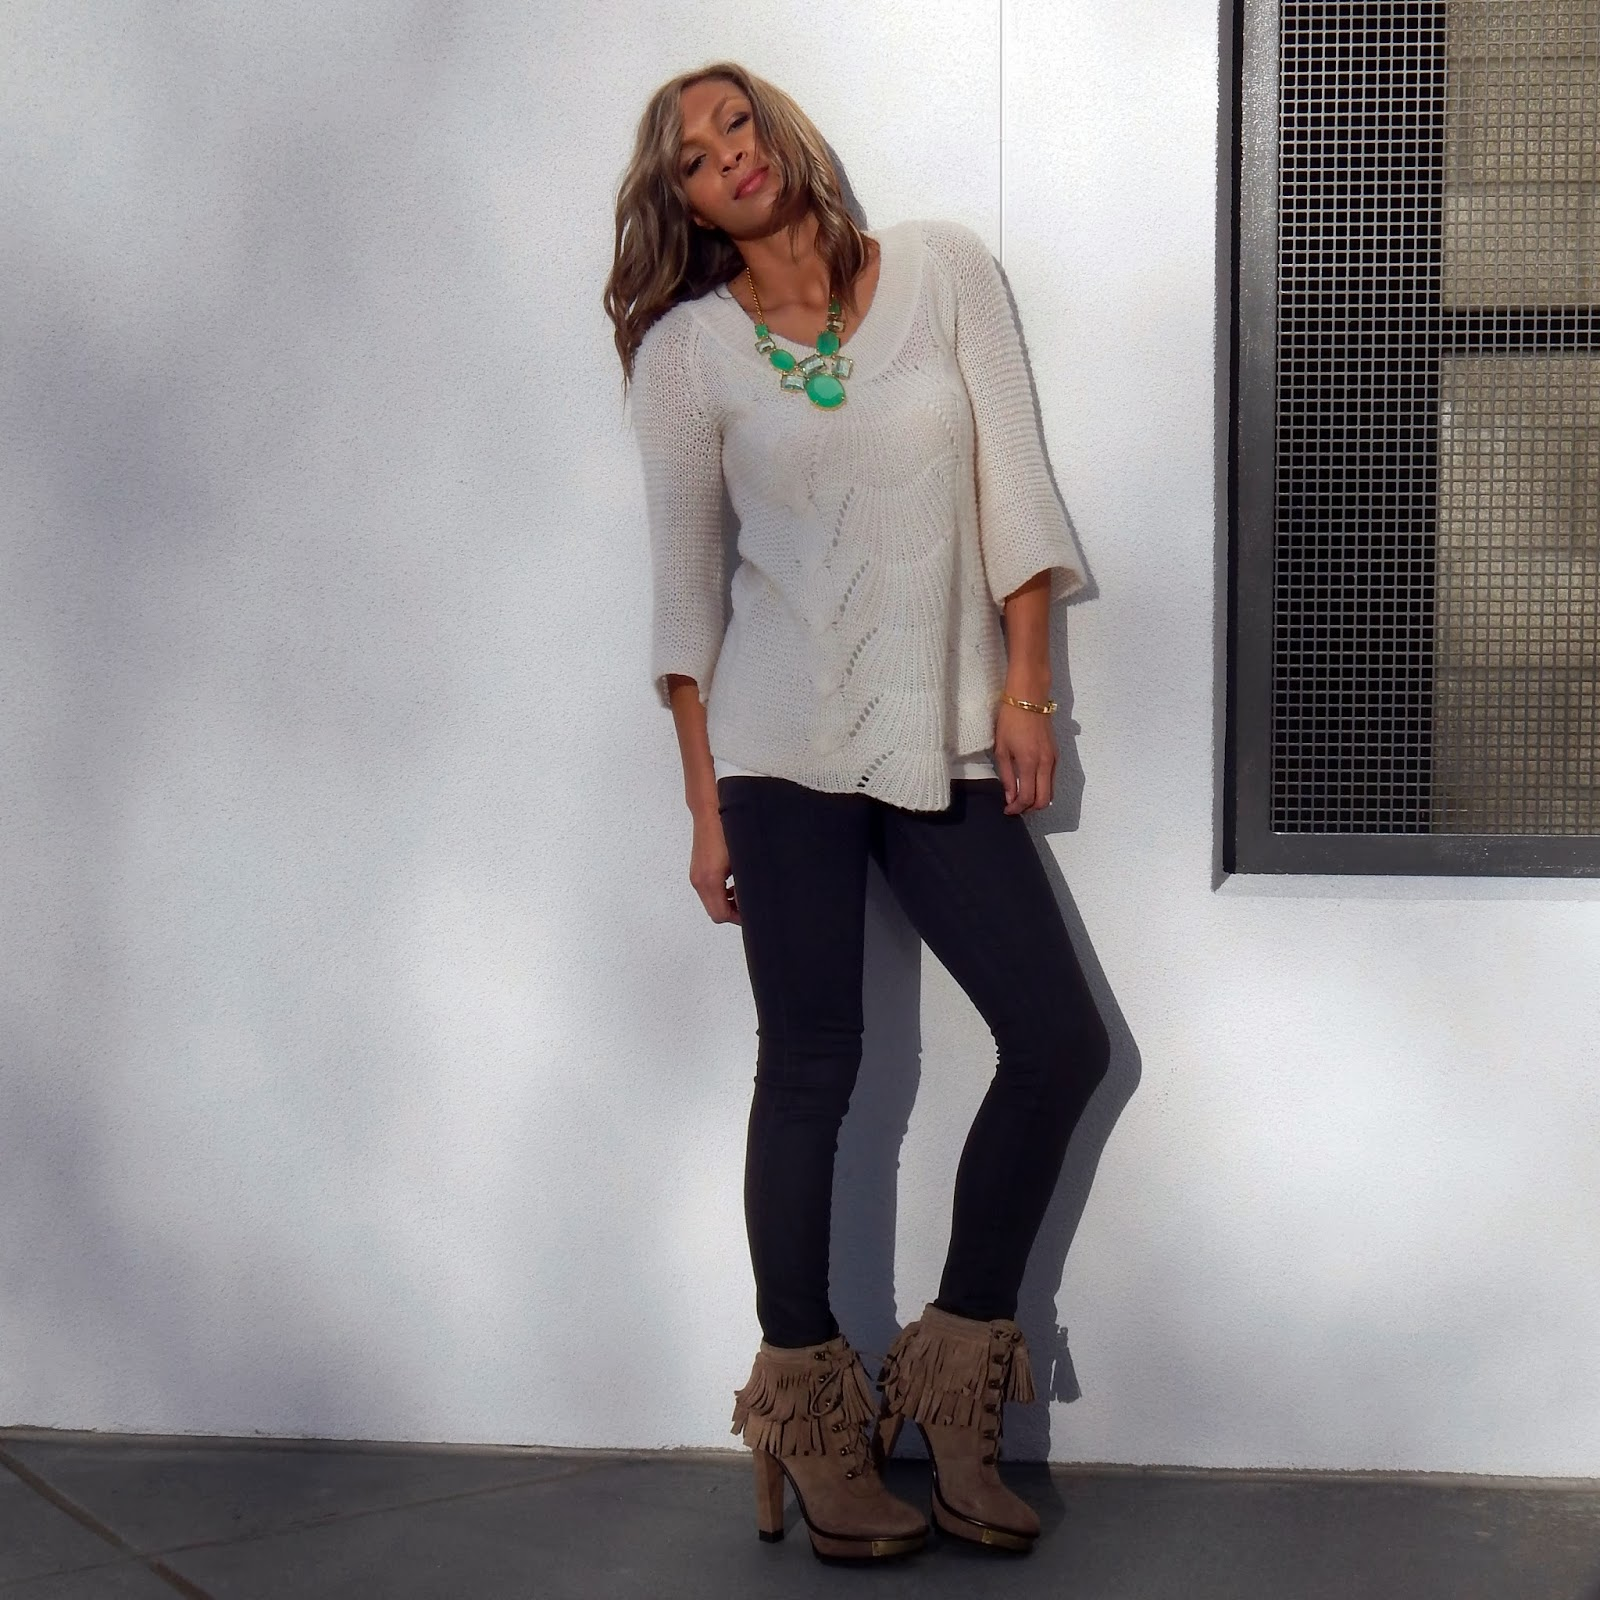 Black jeans and booties, what to wear with suede boots, bay area style, san francisco style, bay area bloggers